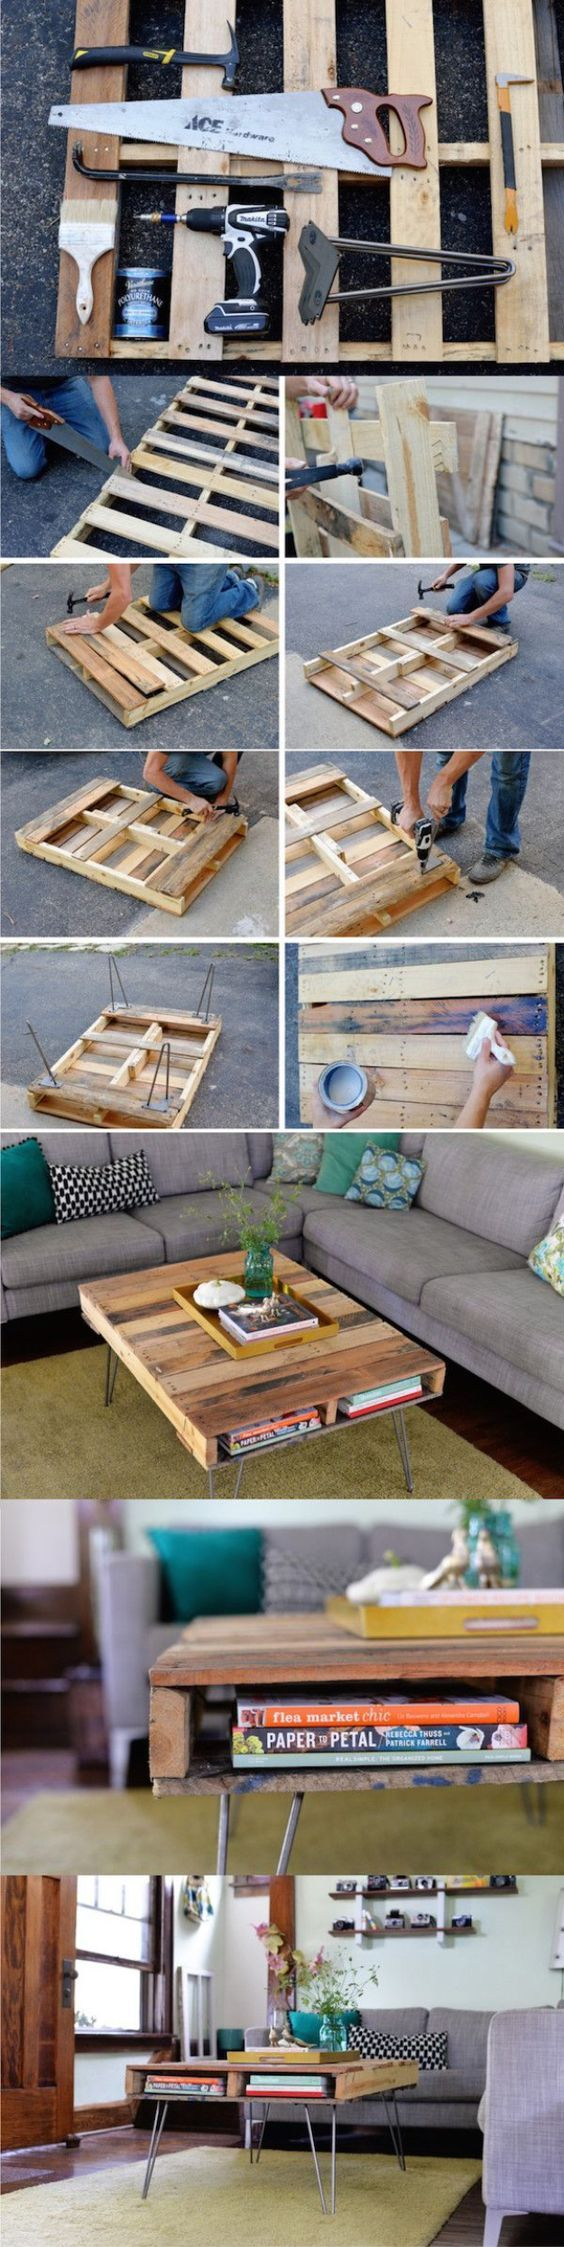 16 diy coffee table projects - Easy Home Design